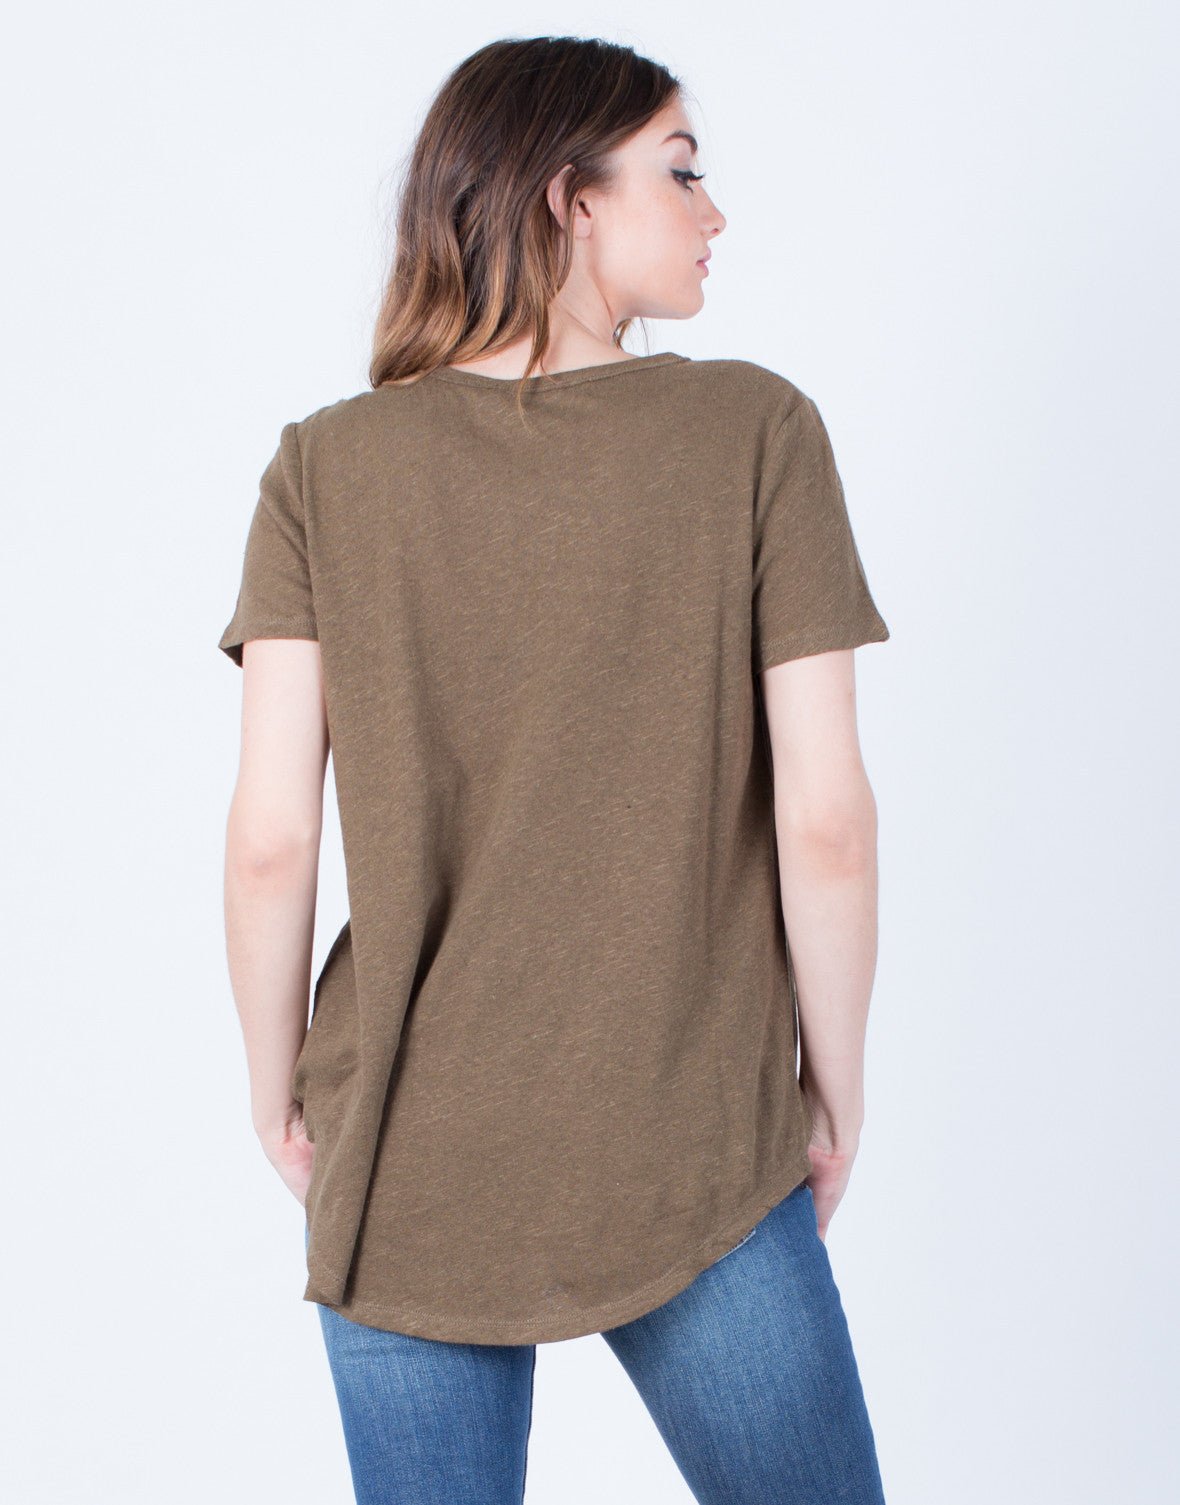 Back View of Basic Cotton Pocket Tee